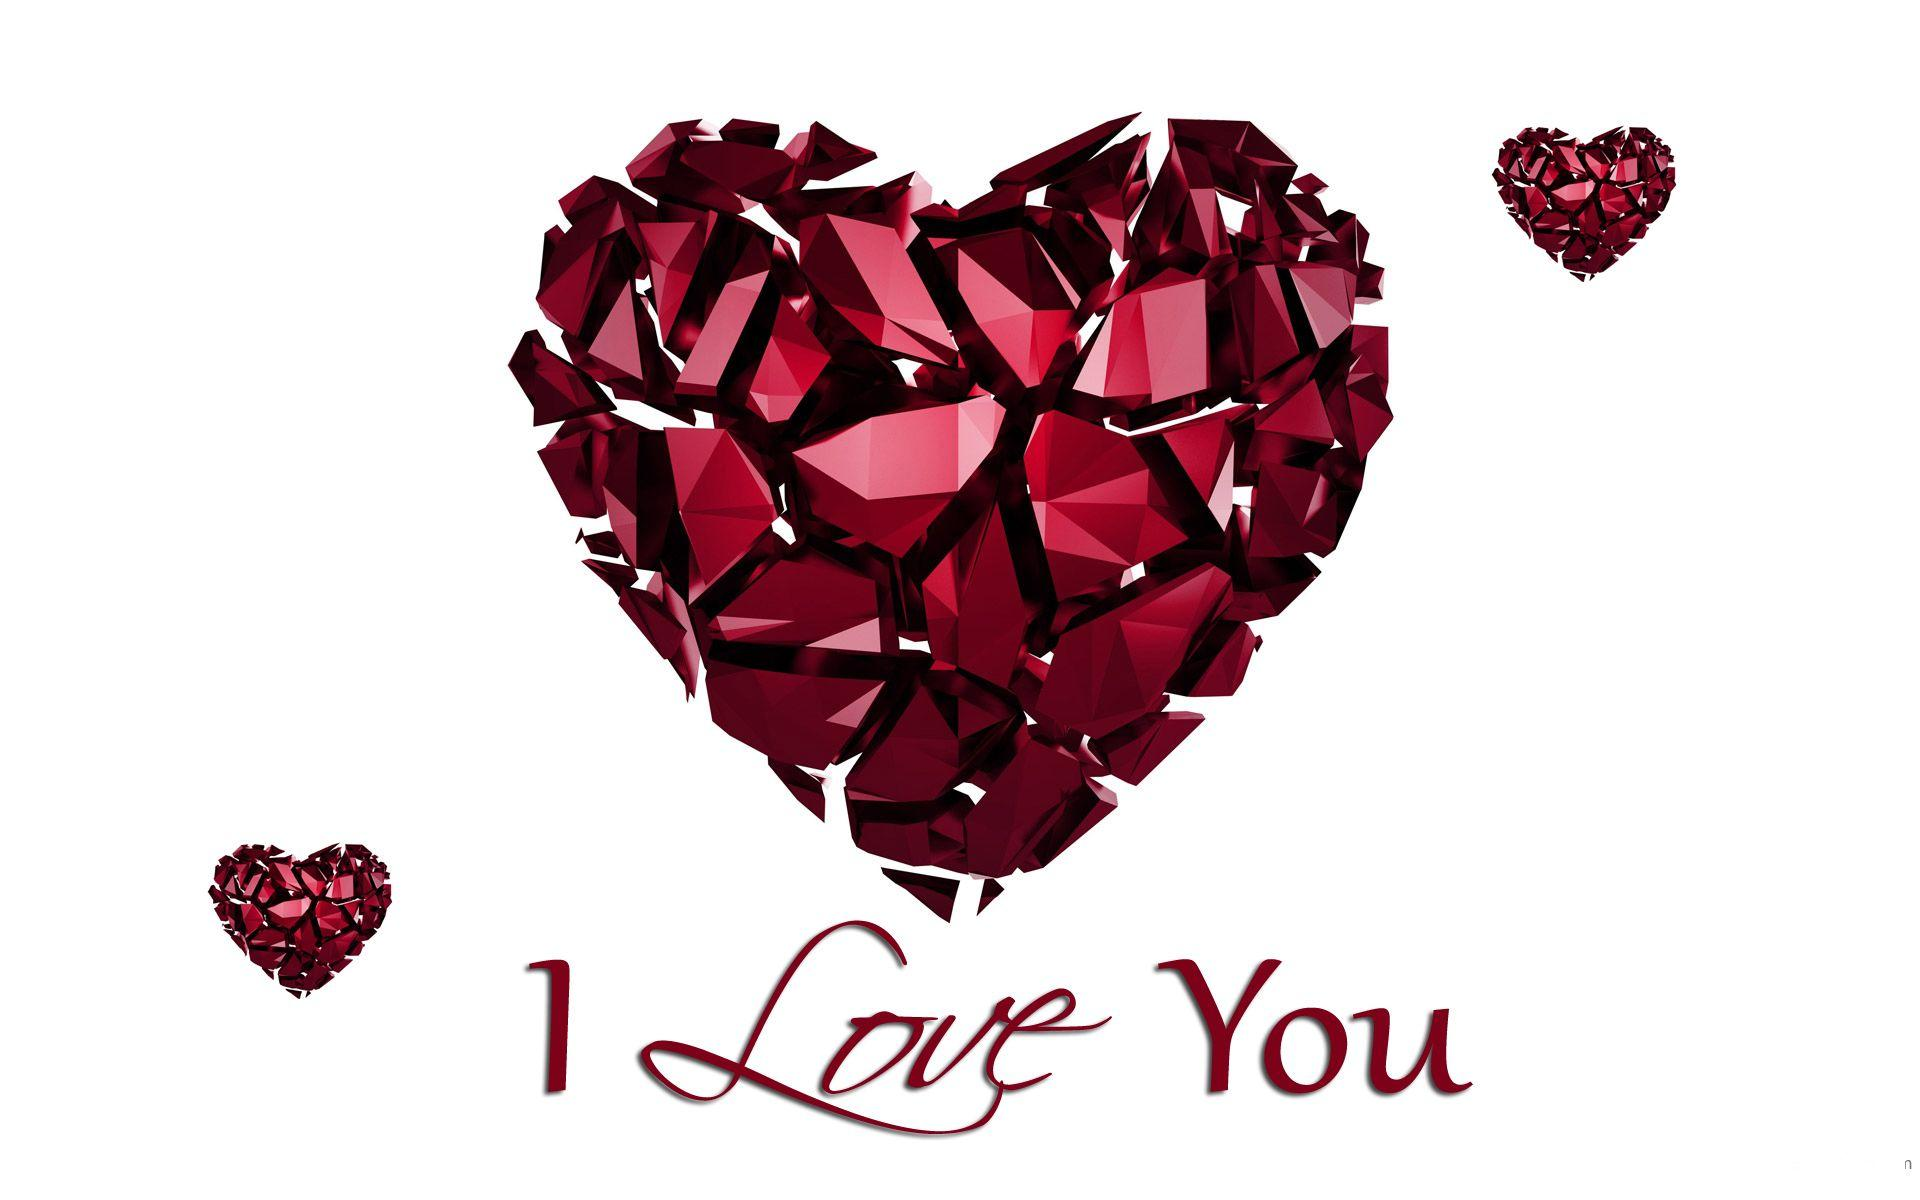 Wallpaper Love You 3d : I Love You Image Wallpapers - Wallpaper cave